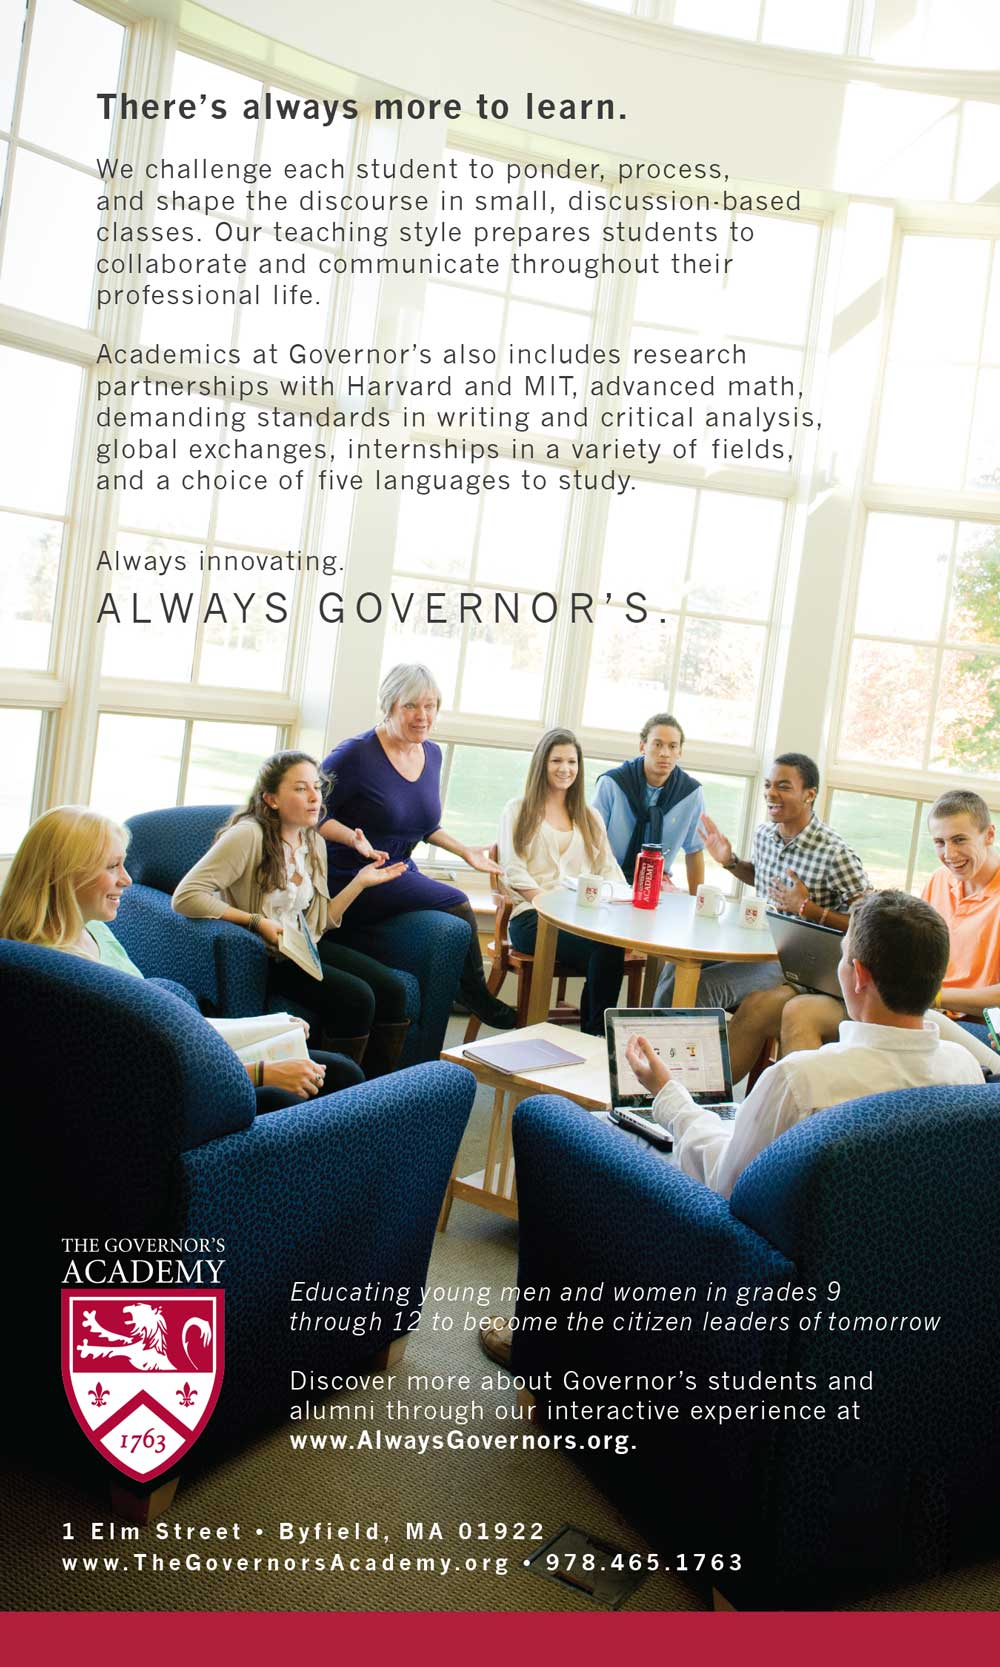 The-Governor's-Academy-Creosote-Affects-Branding-Advertising-2.jpg